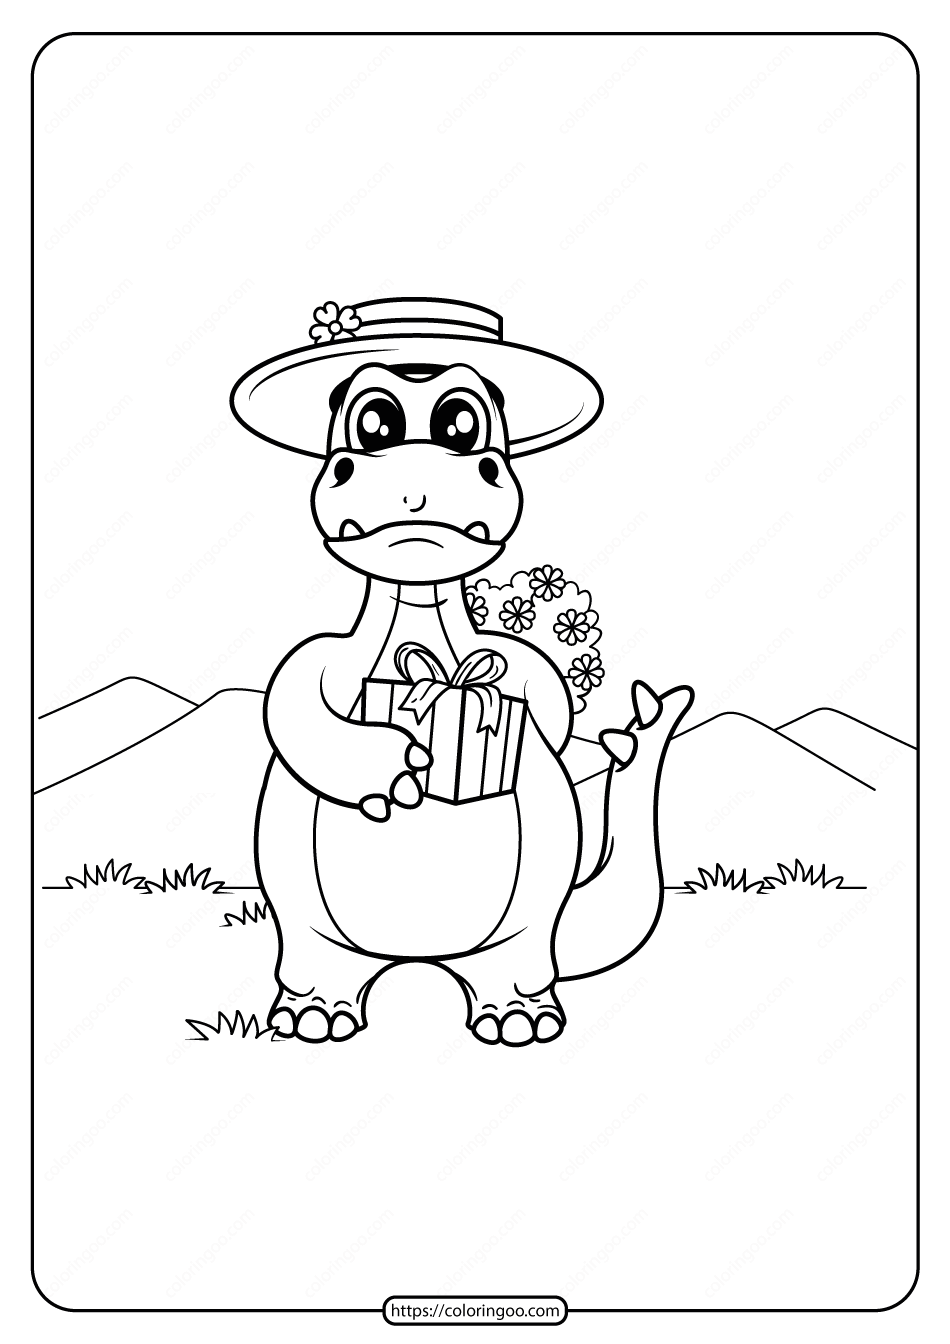 Free Printable Animals Dinosaur Coloring Pages 06